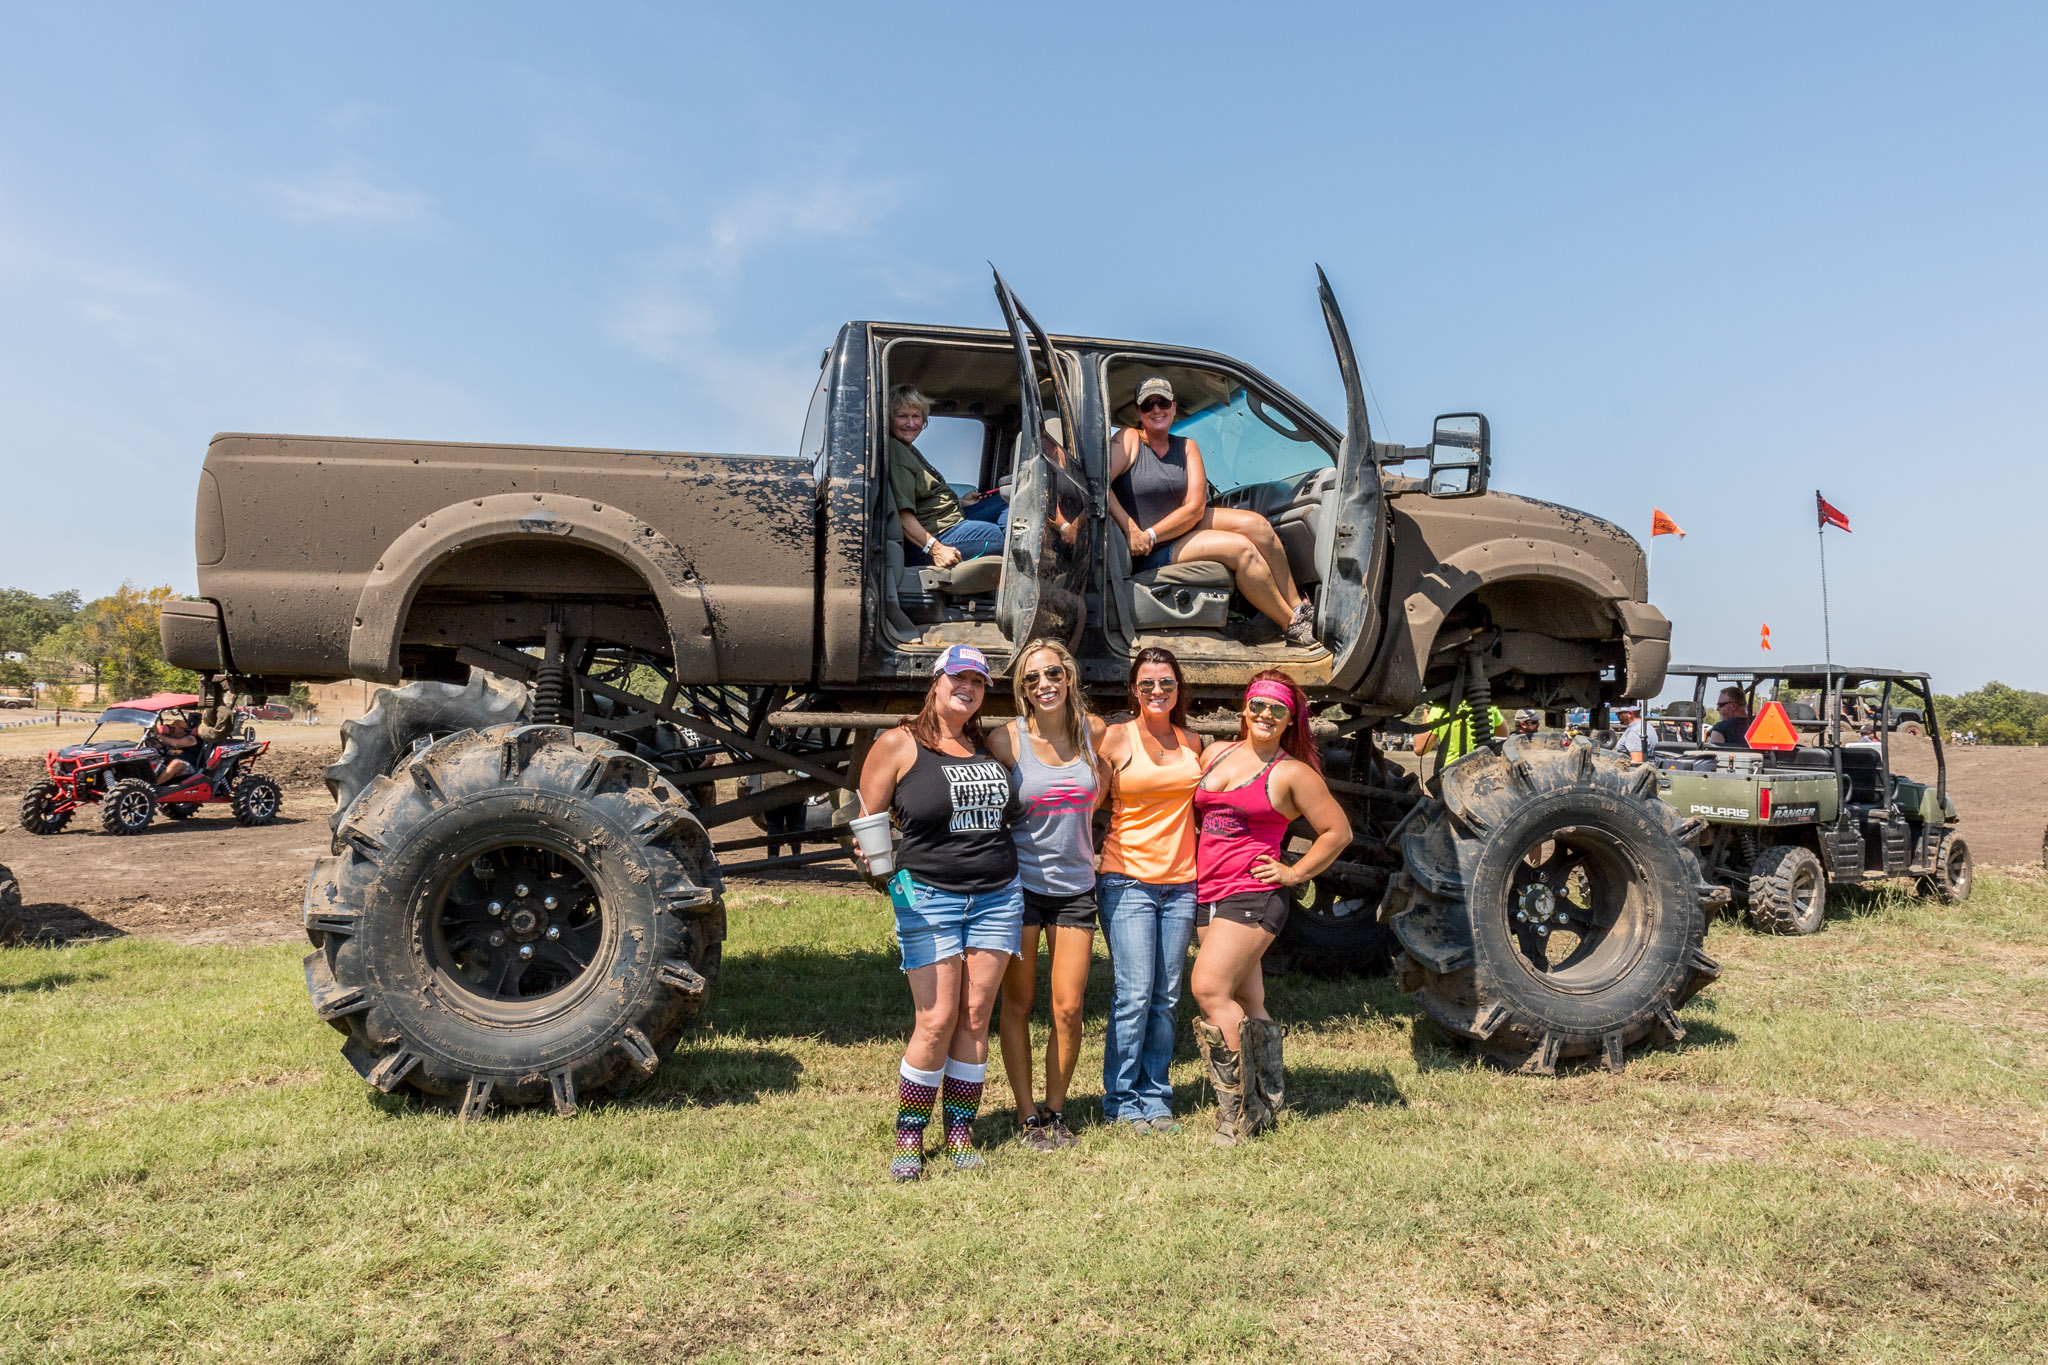 Family posing with Monster truck